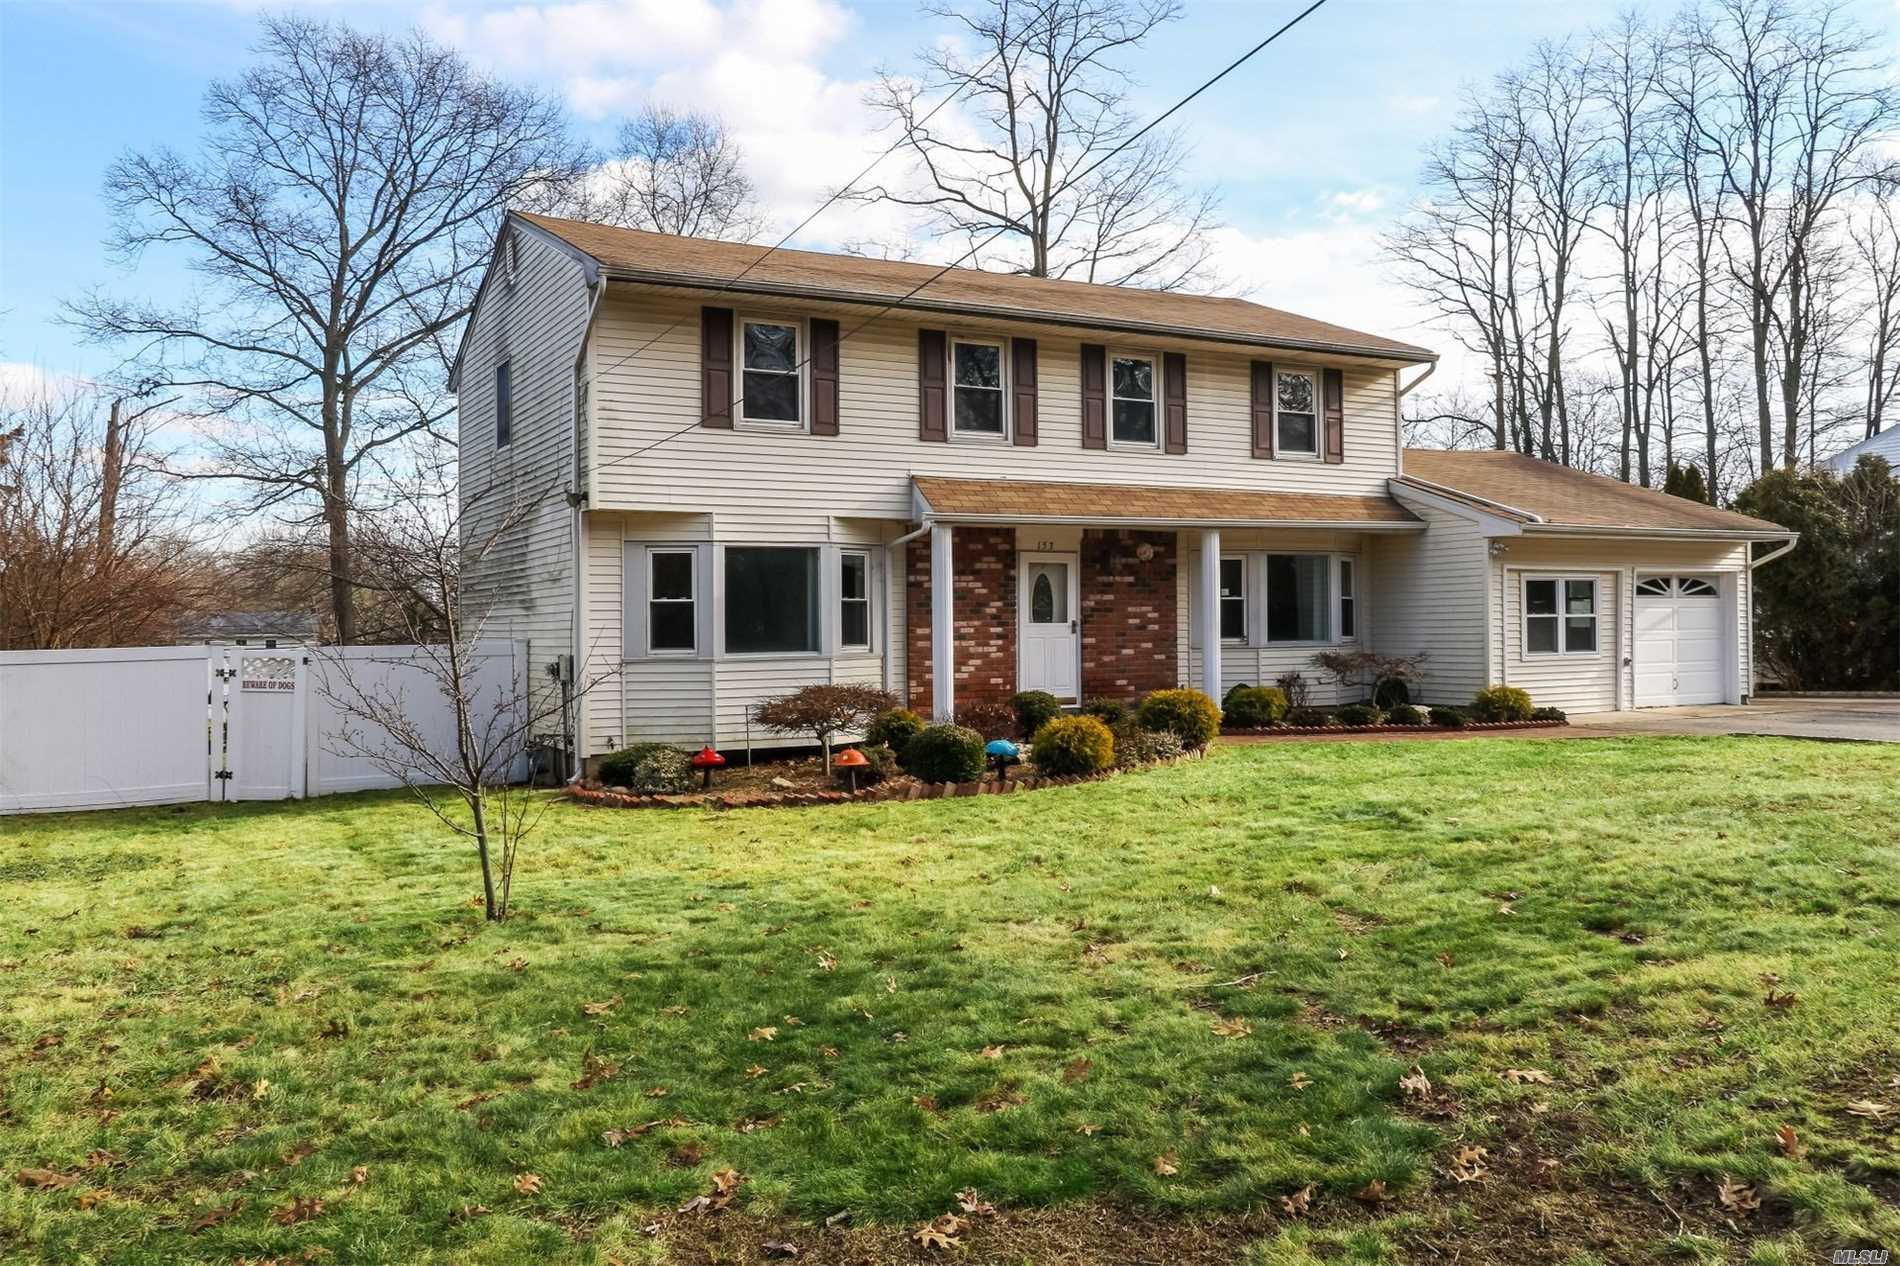 Walk Into This Colonial Style Home On A Tree-Lined Street Situated On A Beautiful, Large Piece Of Property & Call It Home! Warm & Welcoming, This Home Has It All! Generous Sized Bedrooms, Eik & Formal Dining Room, Spacious Living Room, & Den W/ A Wood Burning Fireplace. 2.5 Bathrooms, Partial Basement & Attached Garage W/ Access To The First Floor & An Ig Pool! Bring Your Personal Updates & It's Home Sweet Home!